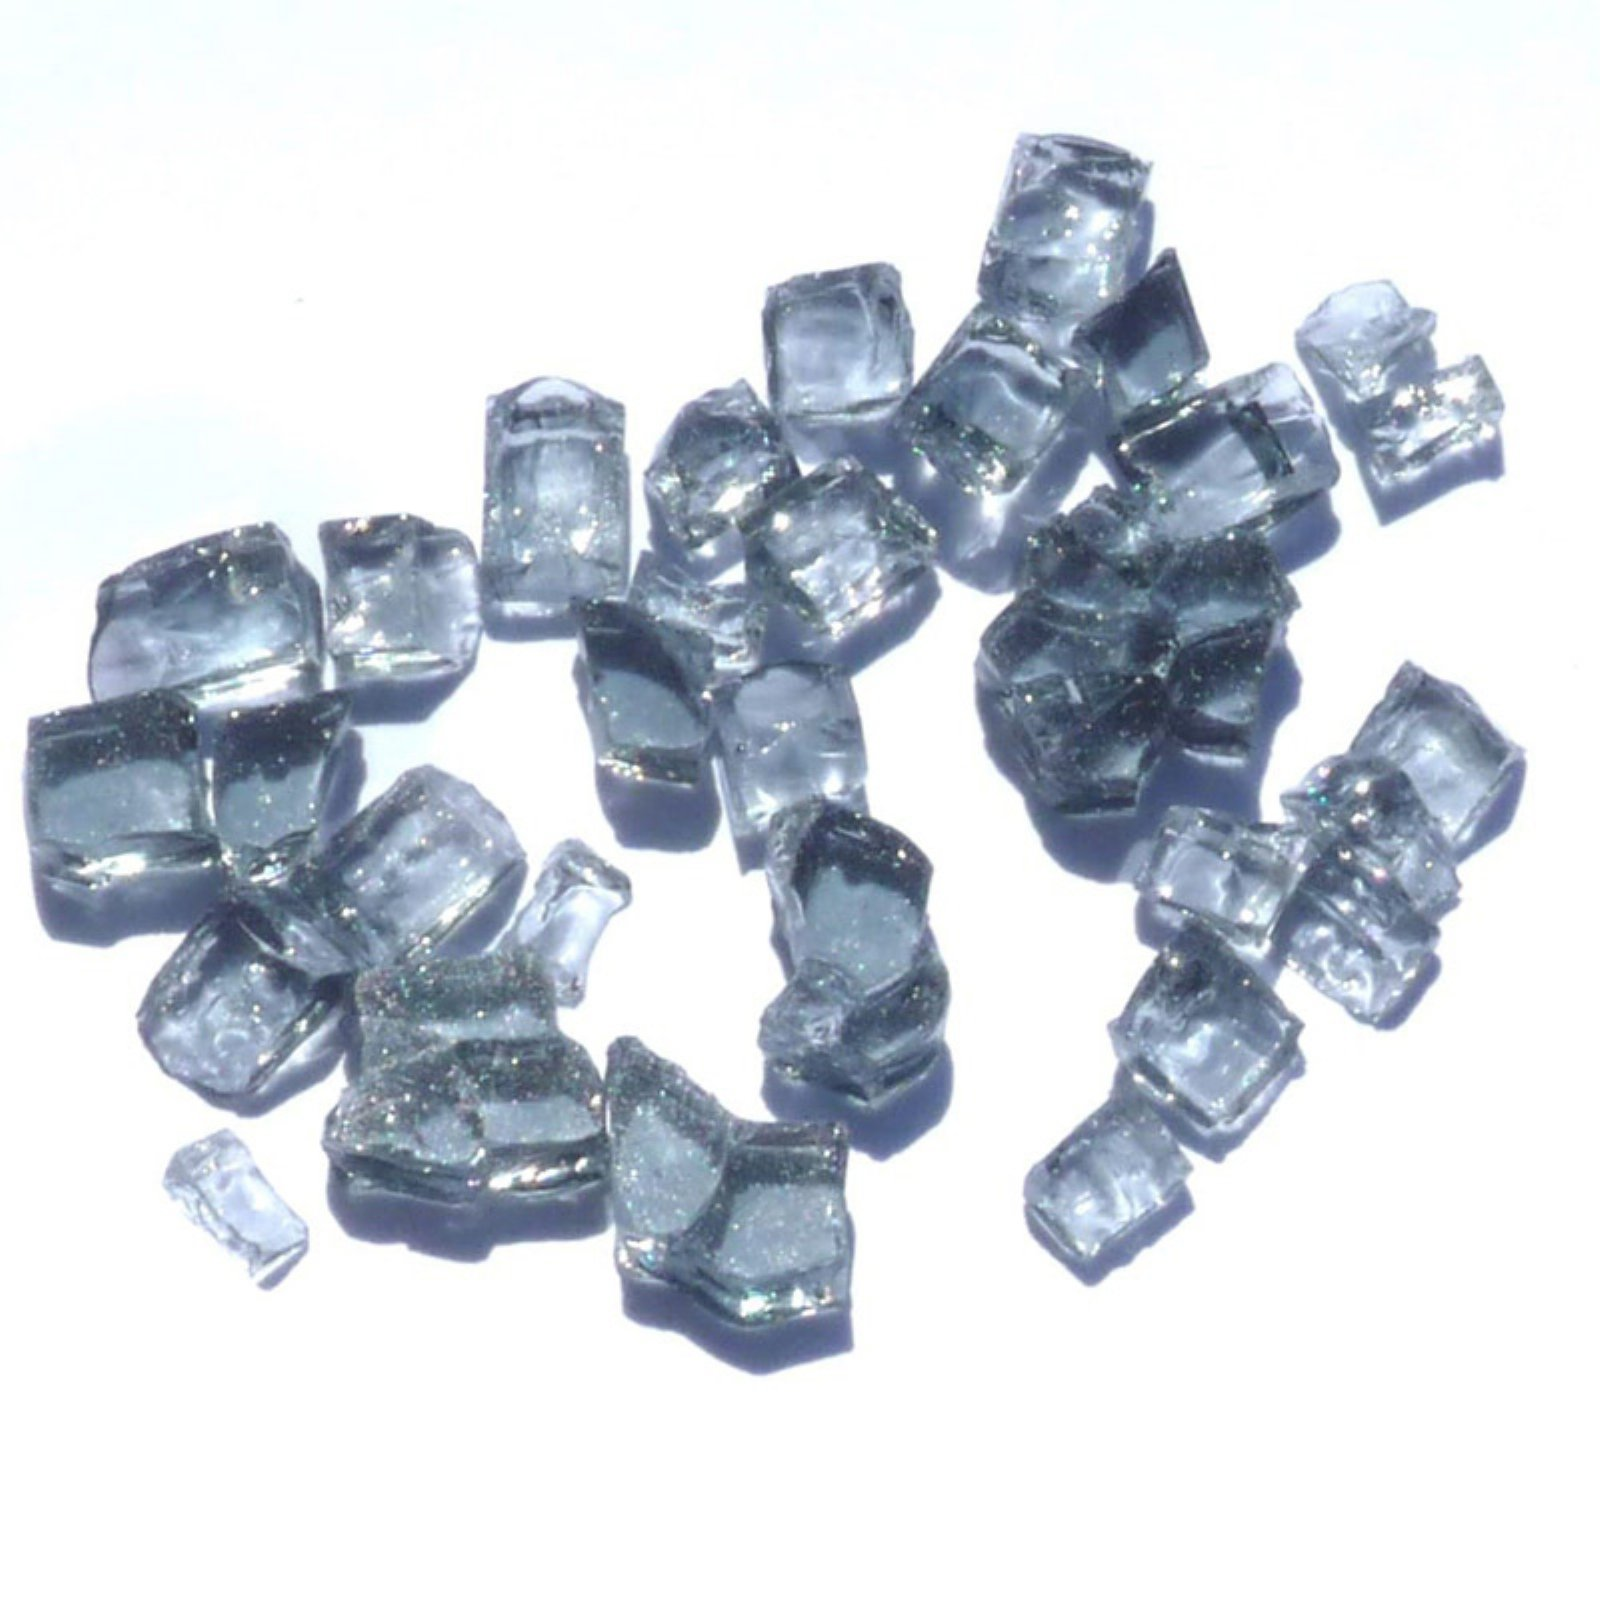 Tretco Fire Glass Crystals